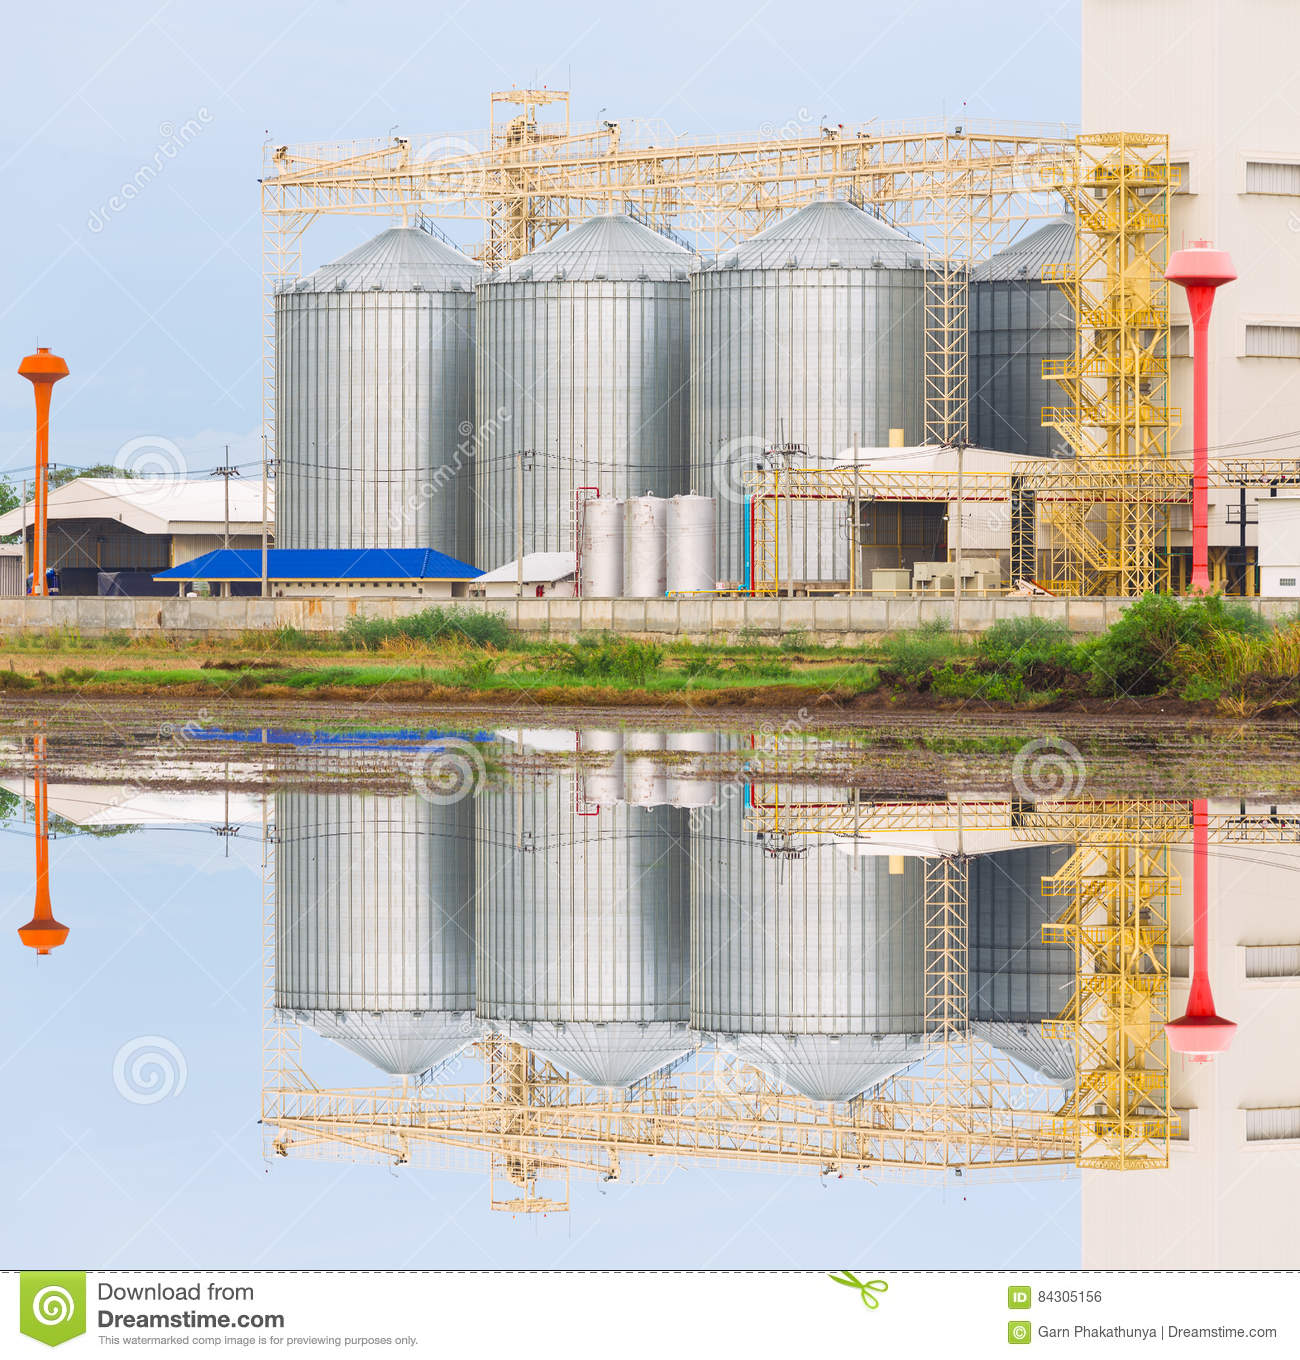 Agricultural Silo - Building Exterior, Storage And Drying Of Grains, Wheat, Corn, Soy, Sunflower Against The Blue Sky With Stock Photo